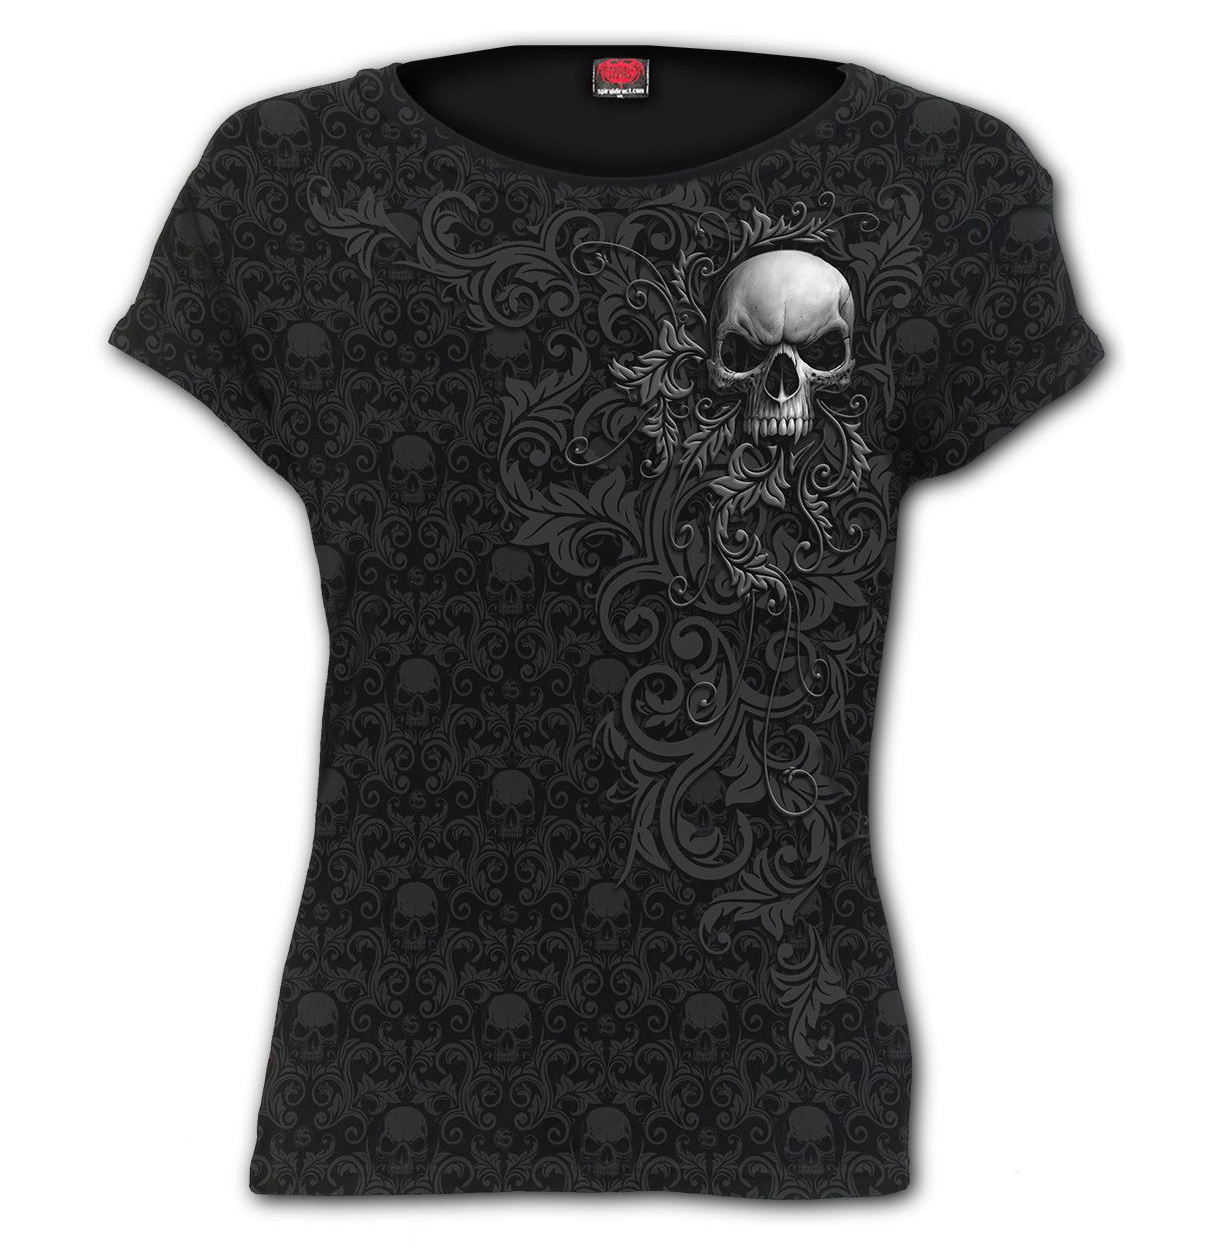 Spiral-Direct-Ladies-Black-Gothic-SKULL-SCROLL-Impression-T-Shirt-Top-All-Sizes thumbnail 9